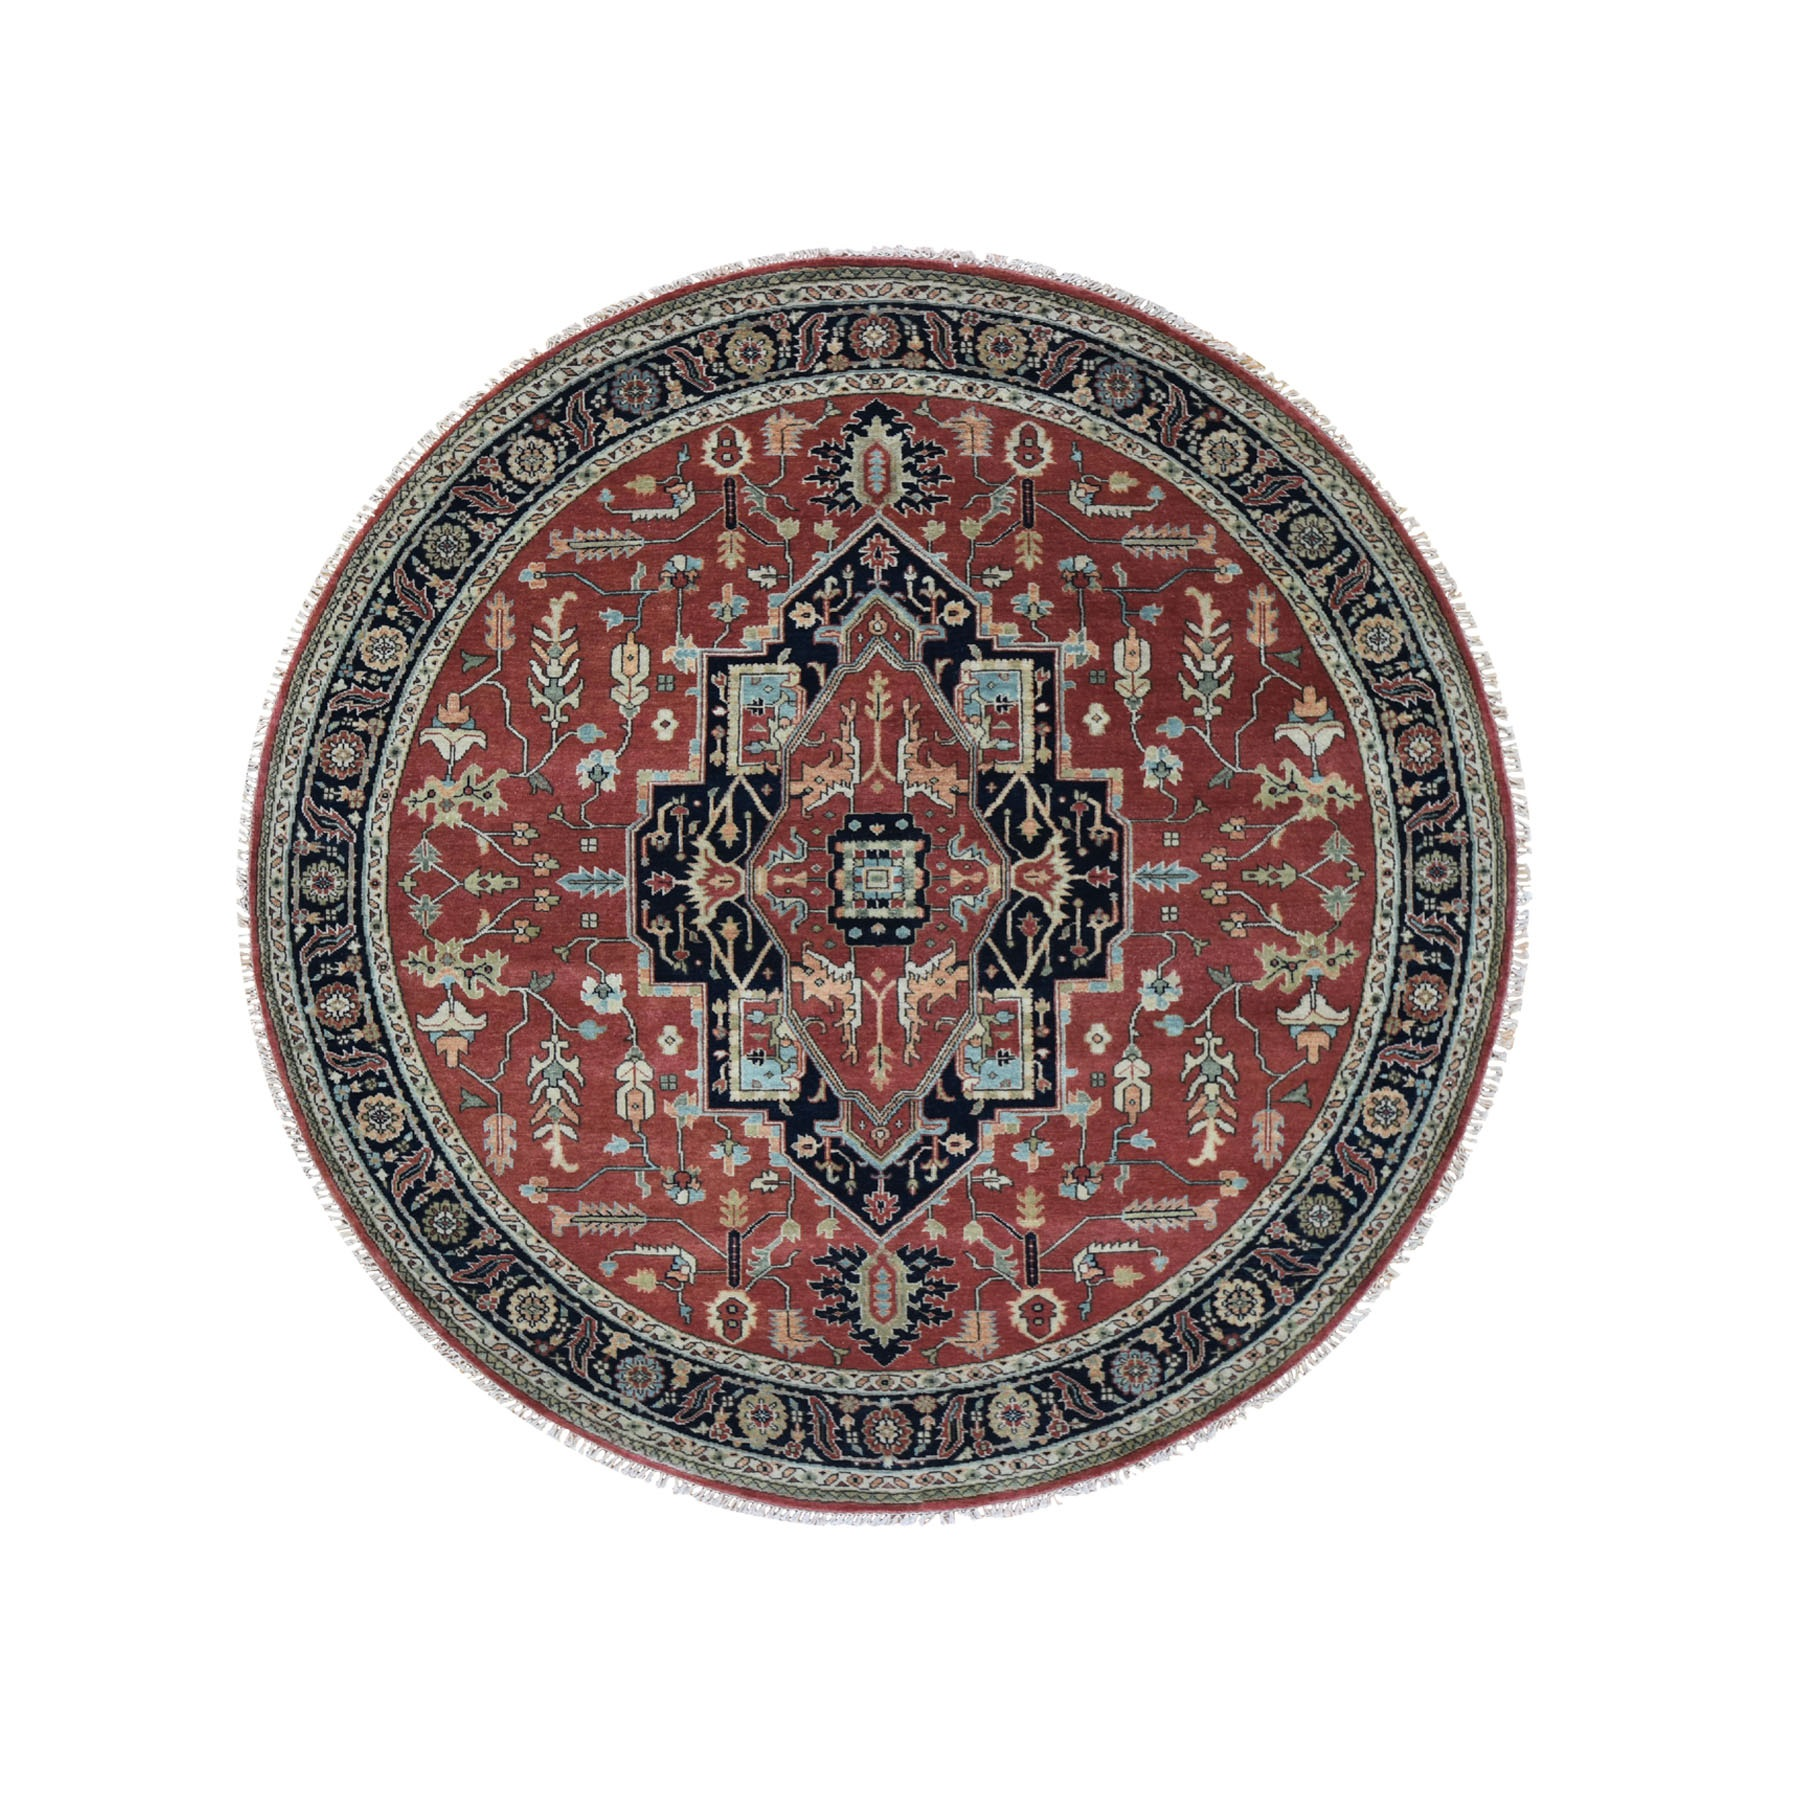 Serapi Heriz and Bakhshayesh Collection Hand Knotted Red Rug No: 0195922